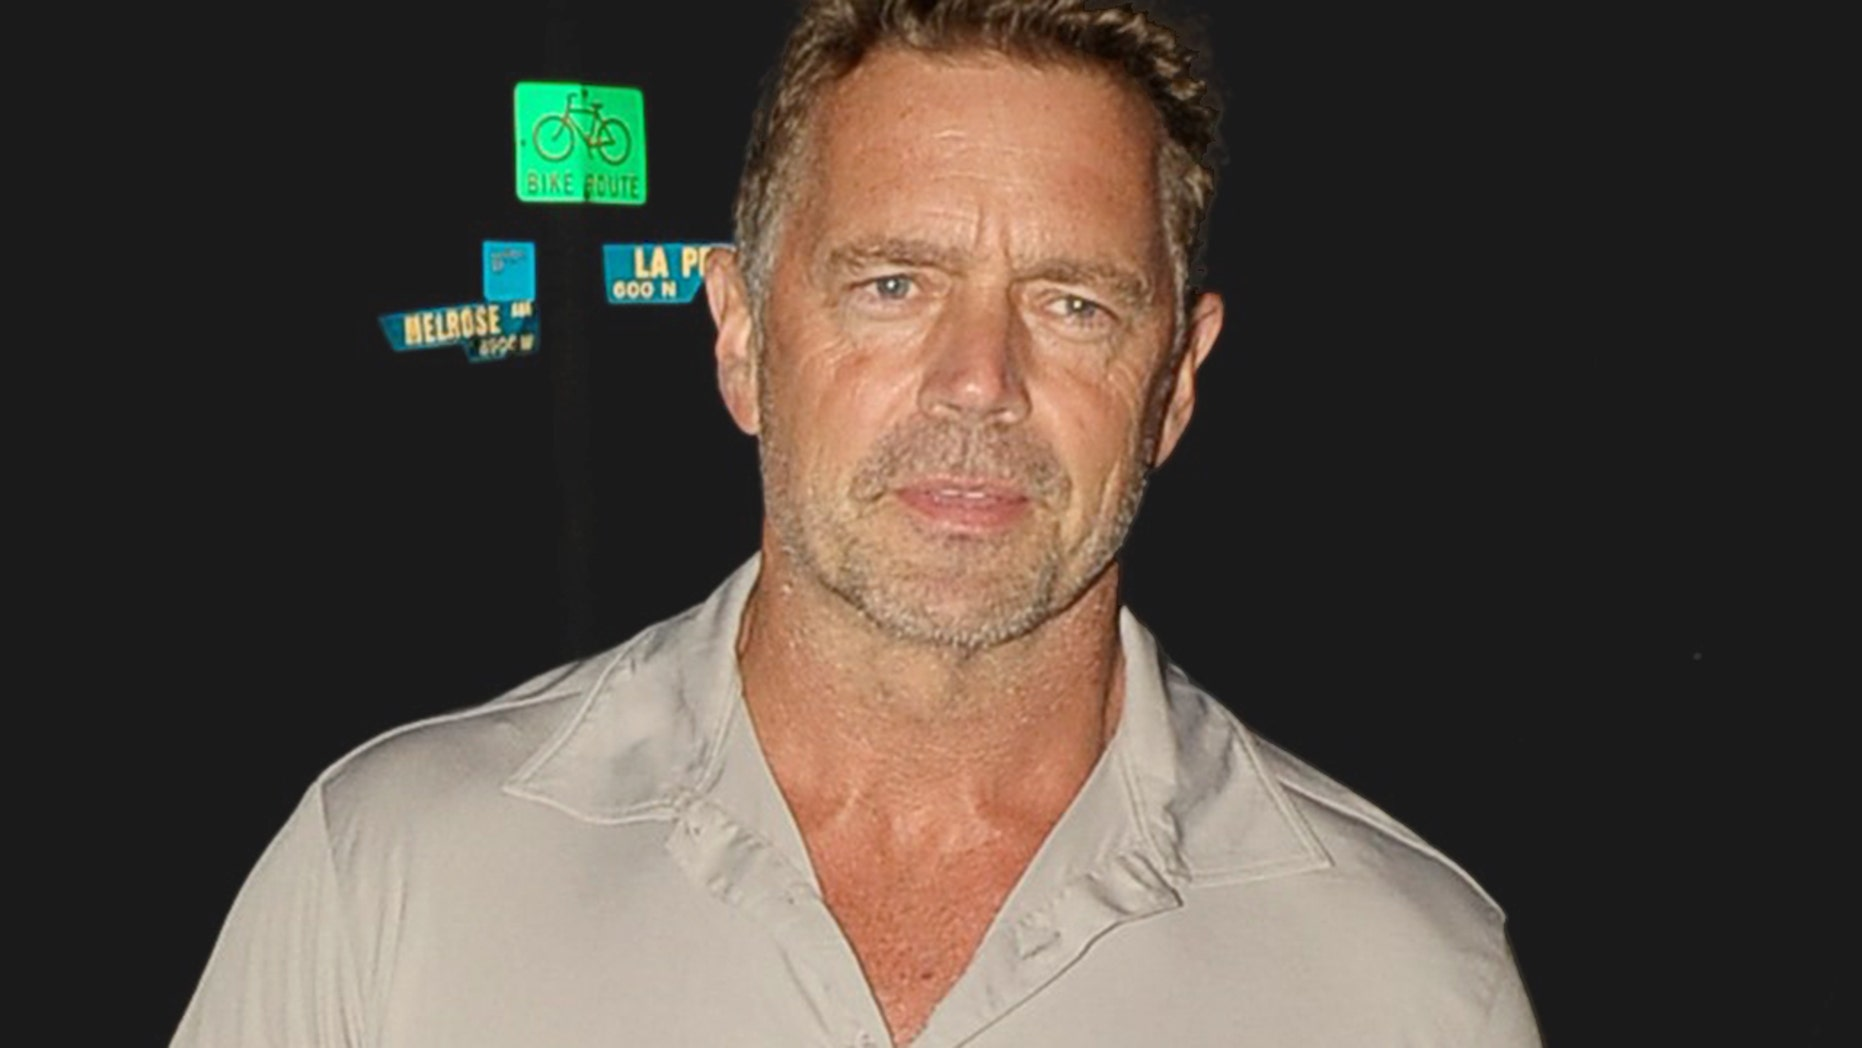 """John Schneider shared some thoughts about """"The Dukes of Hazzard"""" following his appearance on """"Dancing with the Stars."""""""